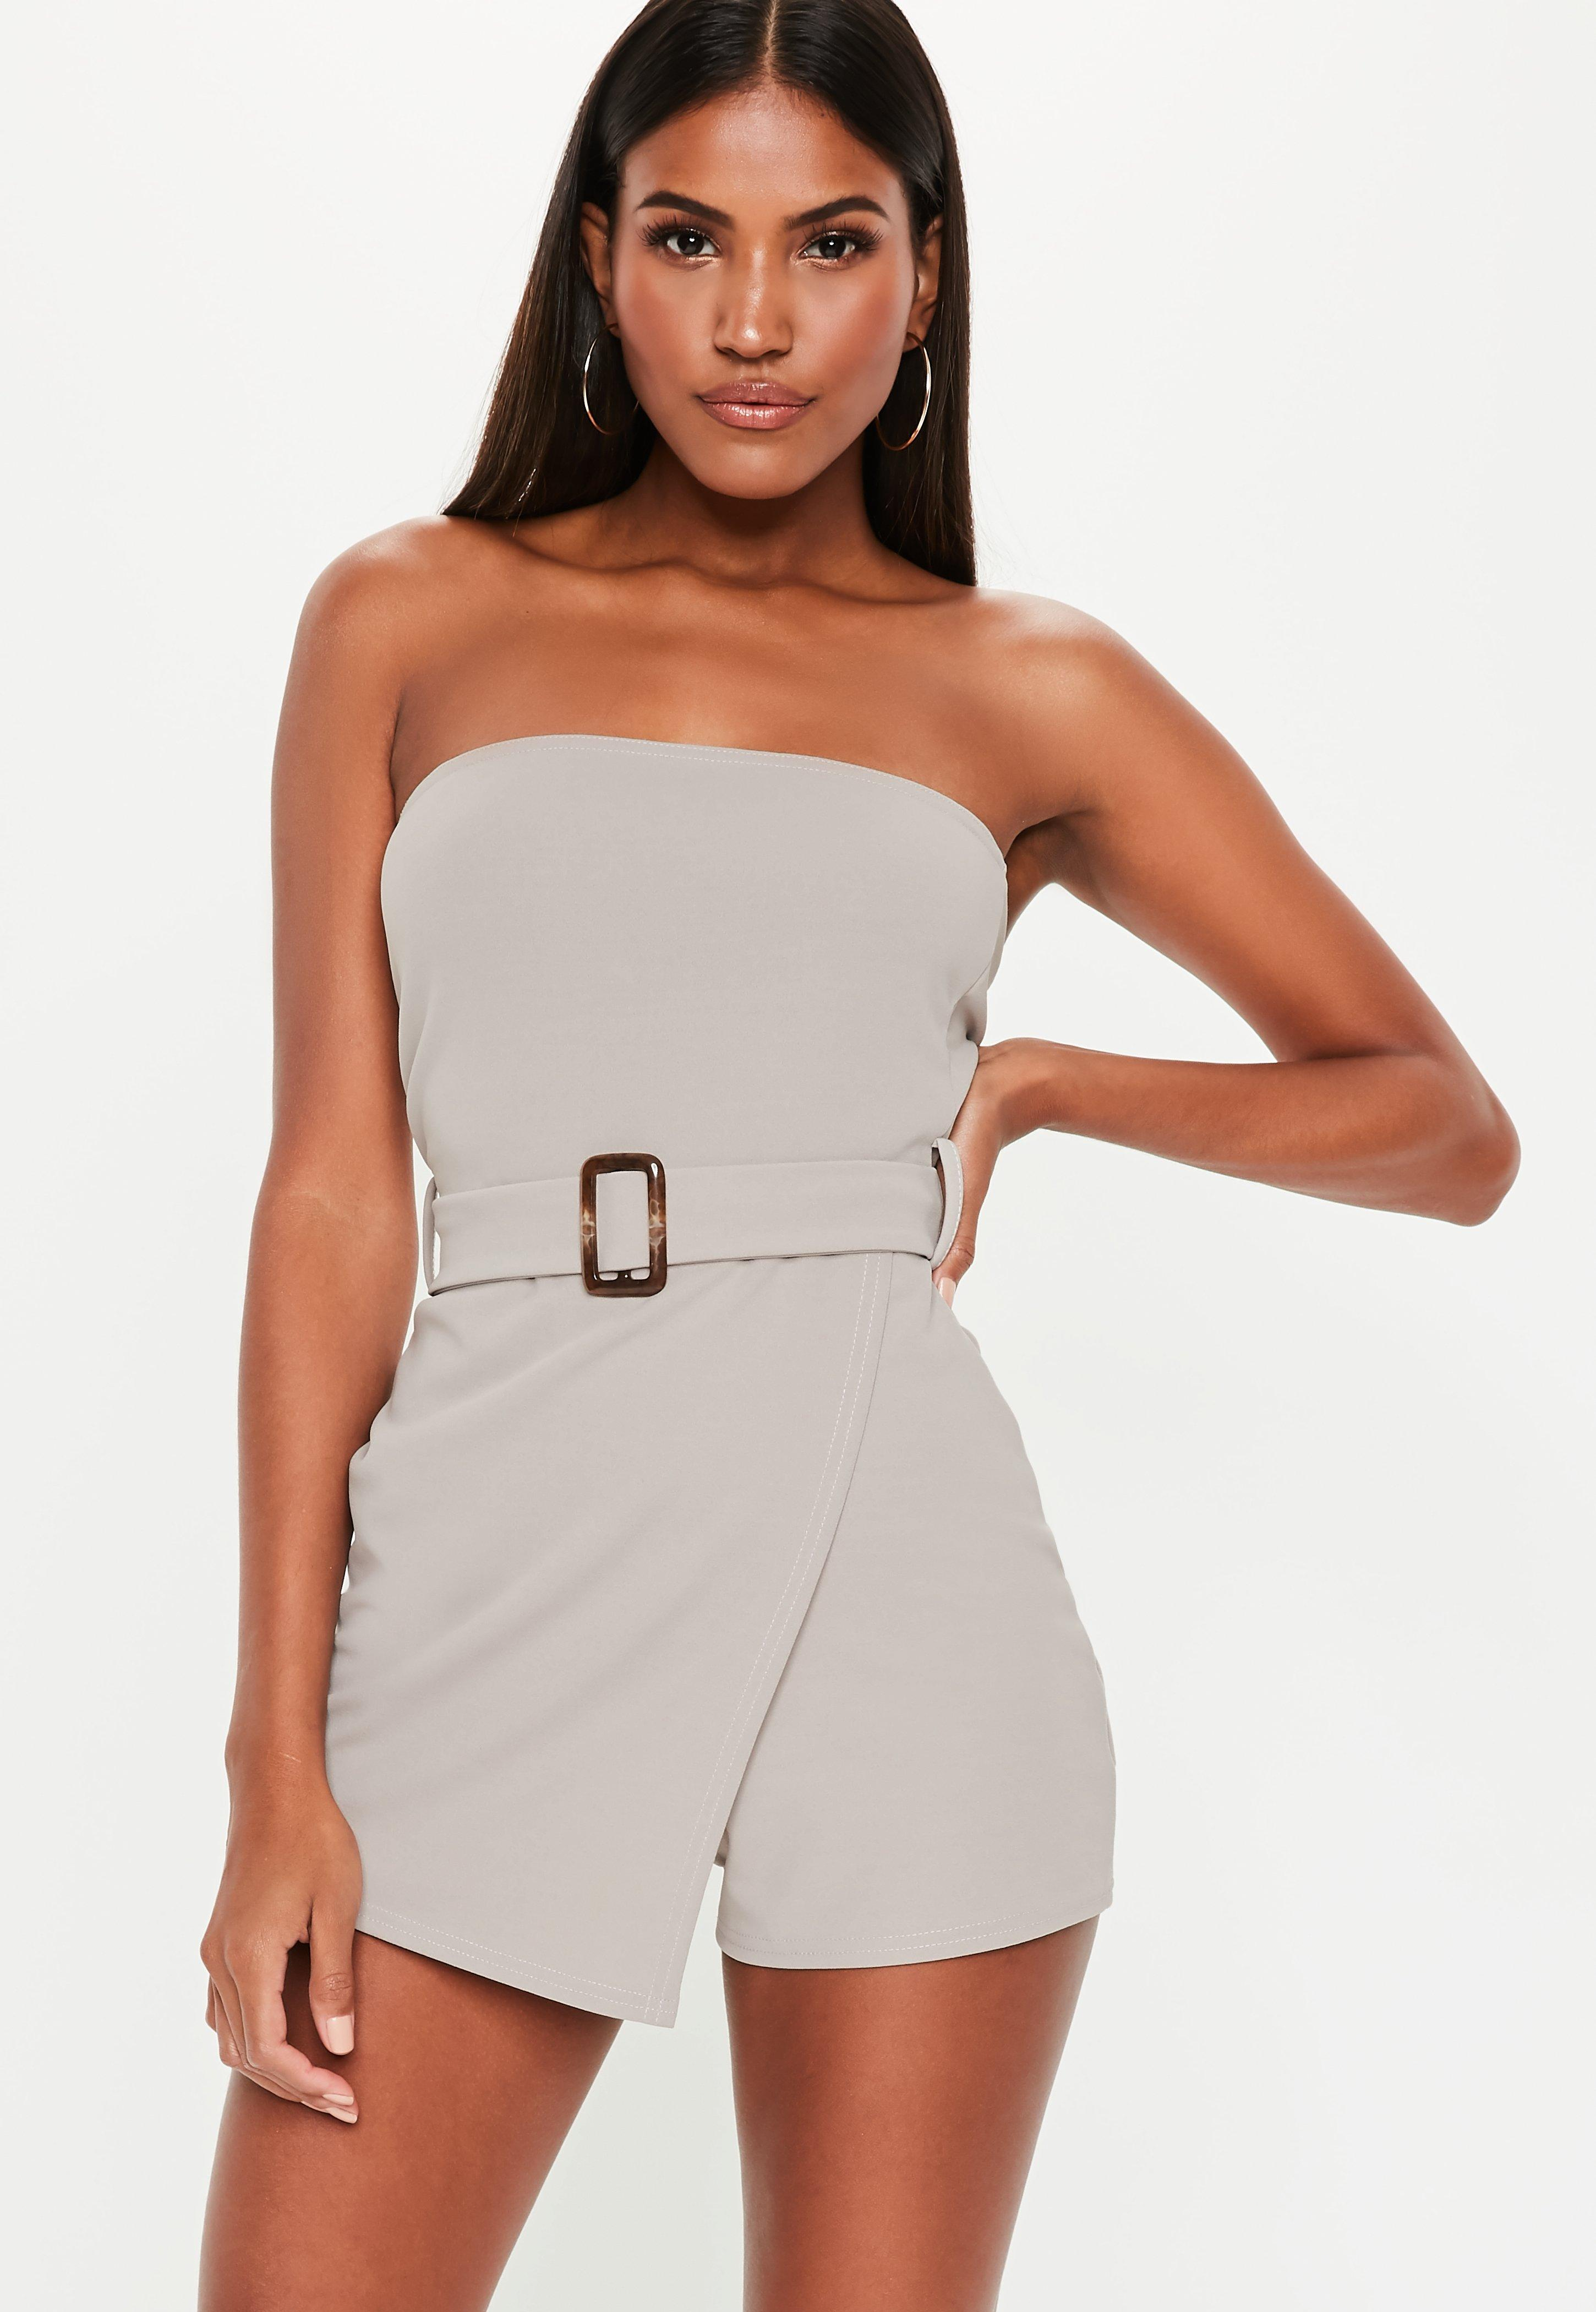 e36c19ba8db Rompers for Women - off the Shoulder Rompers 2019